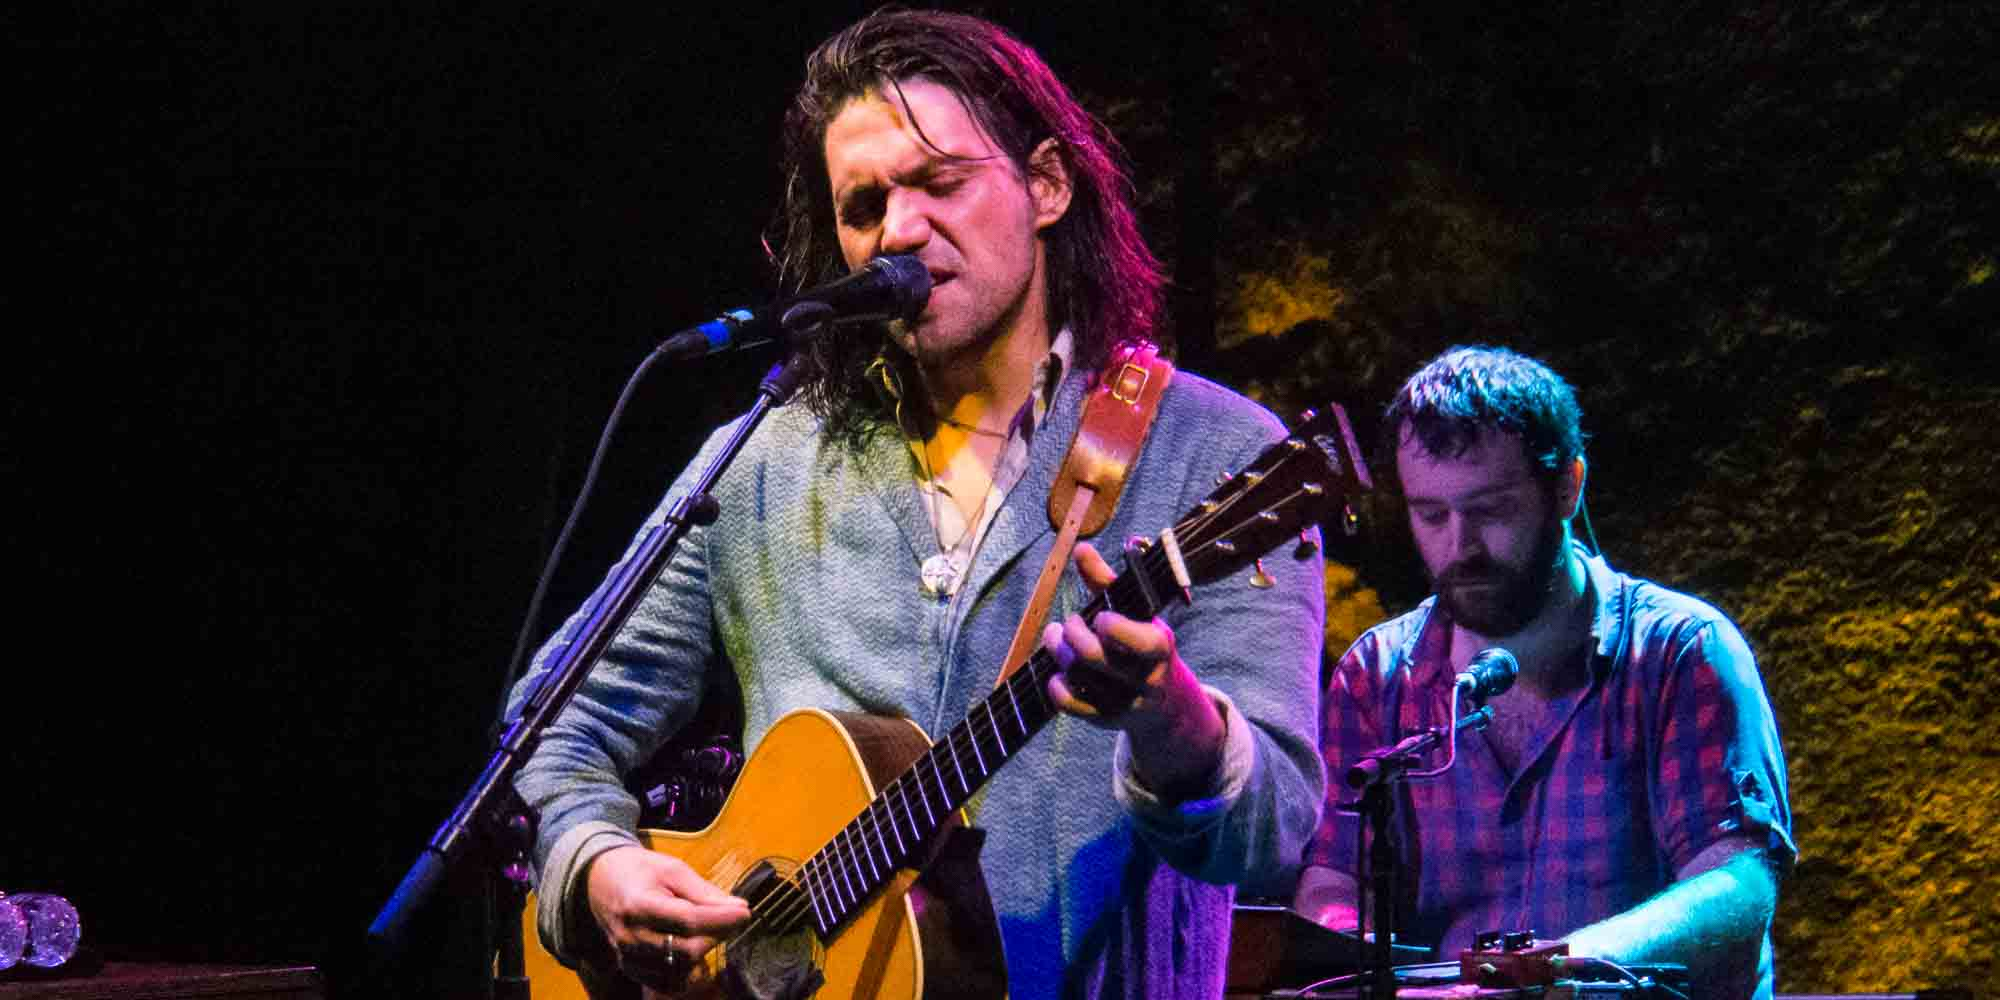 Conor Oberst at Weesner Family Amphitheater 7/28/19